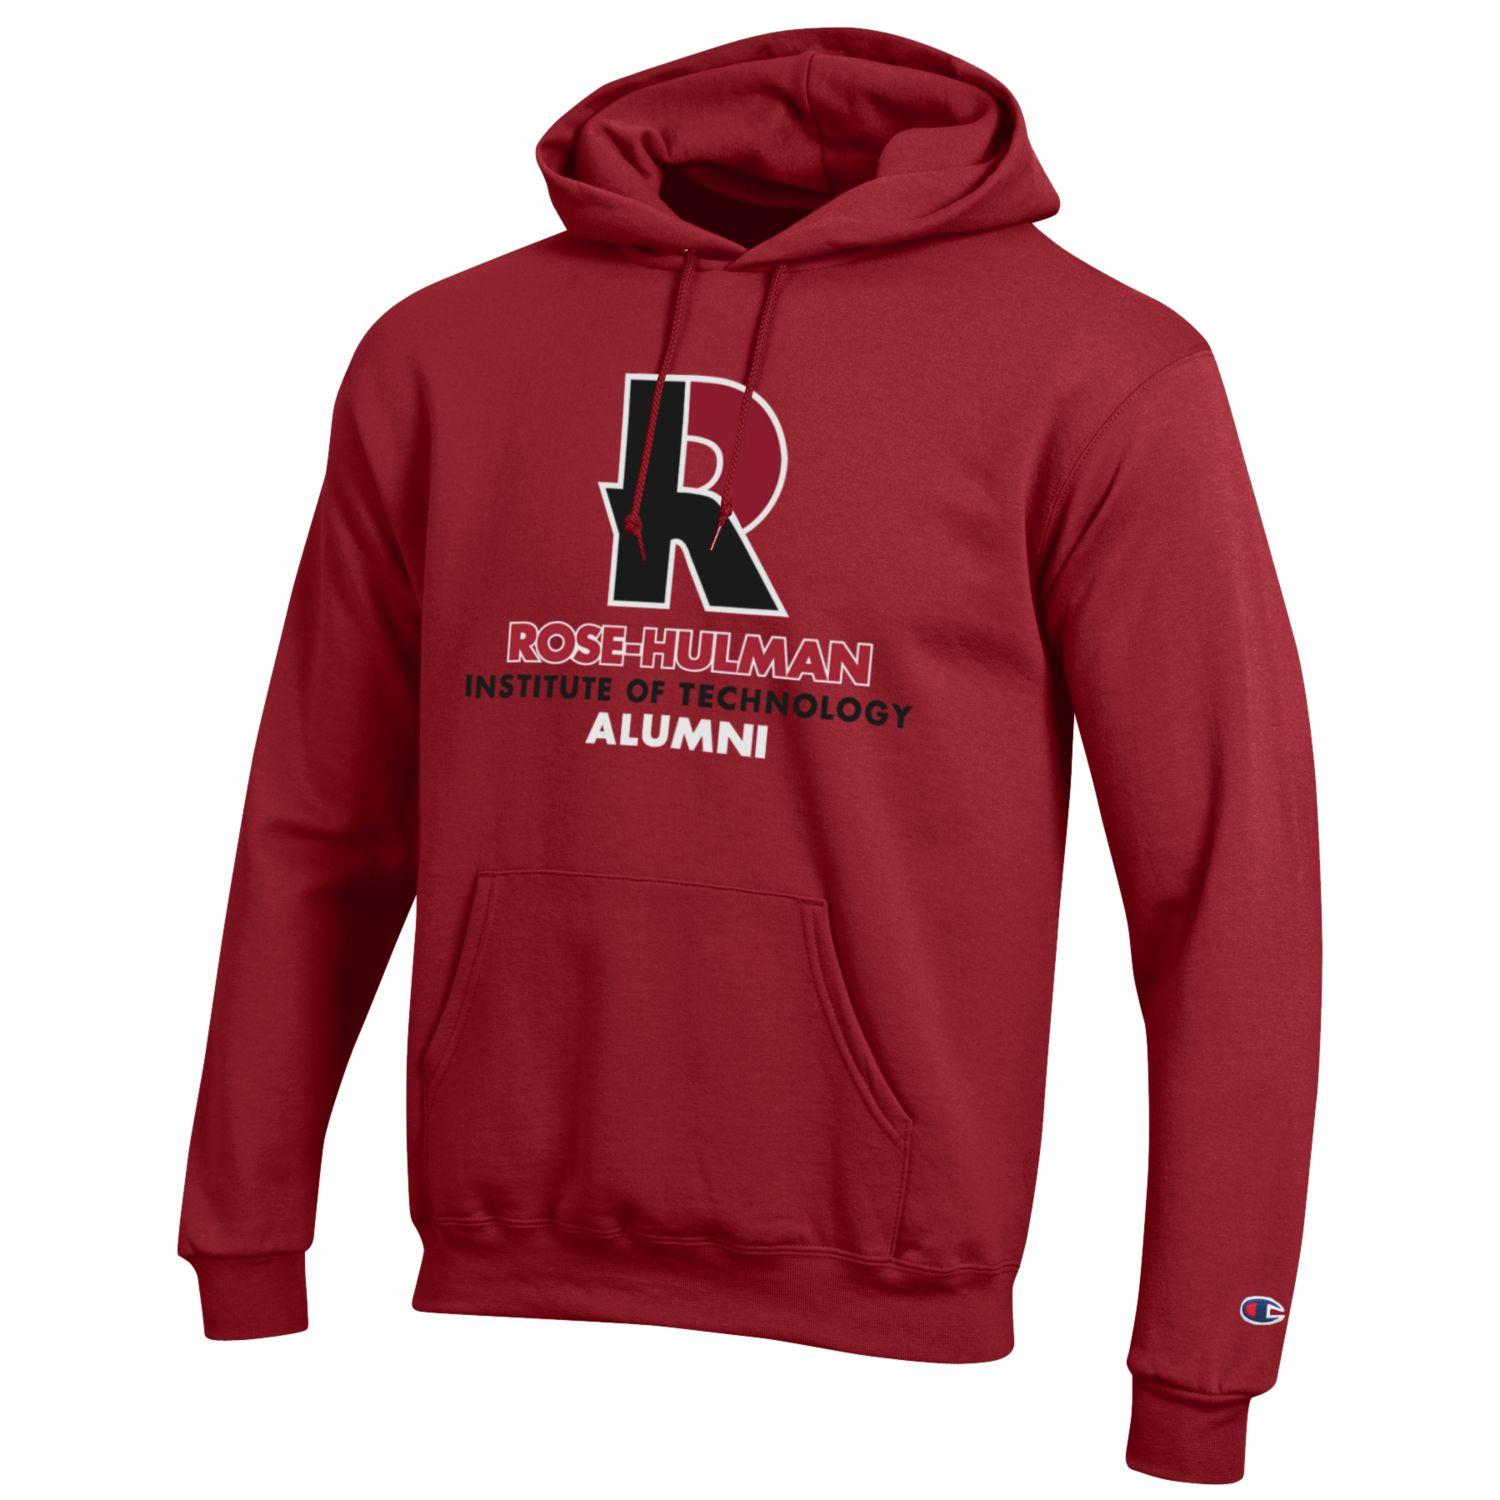 Champion Hooded Cardinal or Charcoal Sweatshirt for Alumni